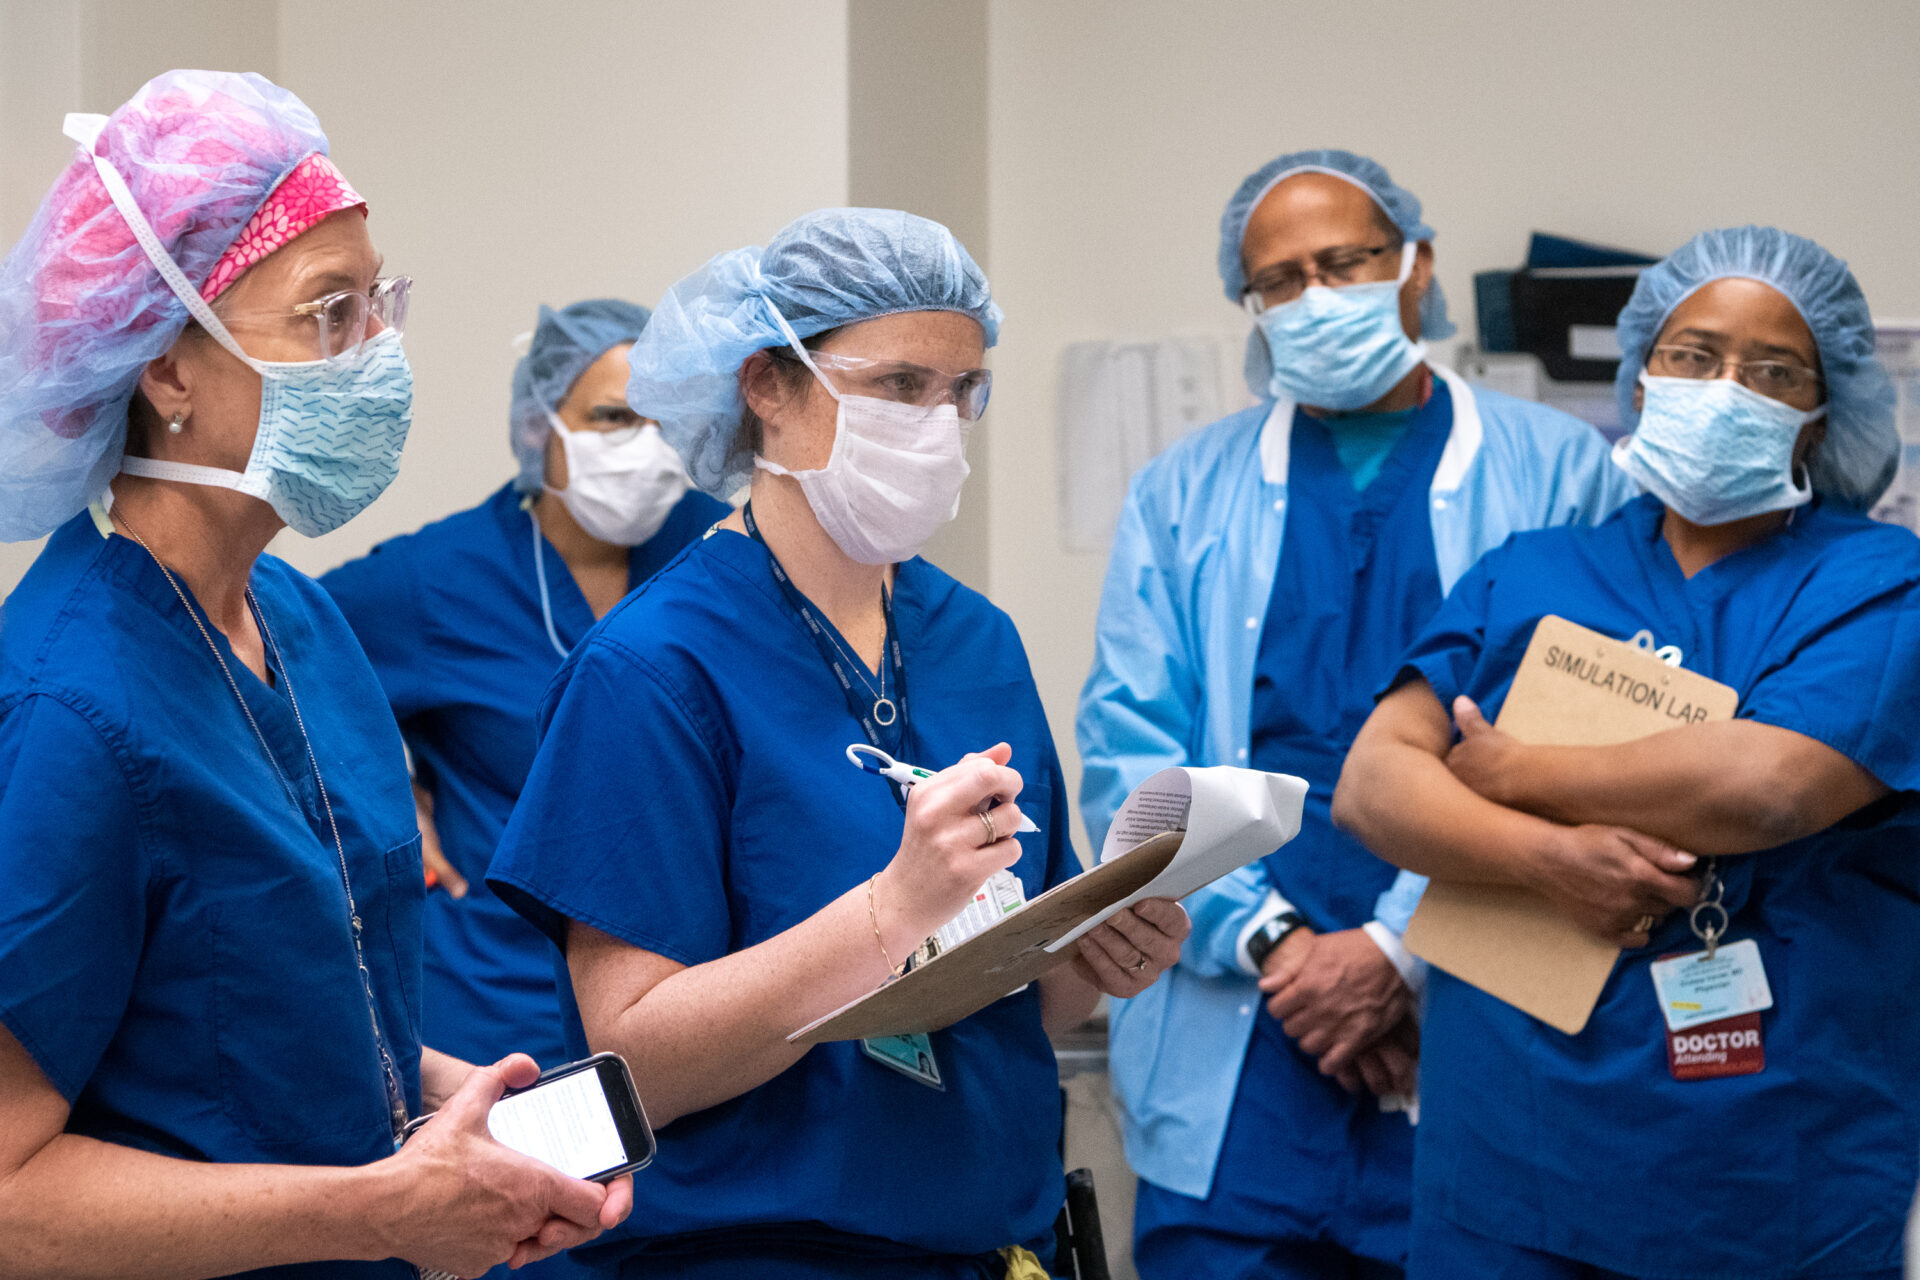 L.A. County health care workers preparing for an influx of COVID-19 patients in a simulation drill at LAC+USC Medical Center on April 3, 2020. (Los Angeles County)